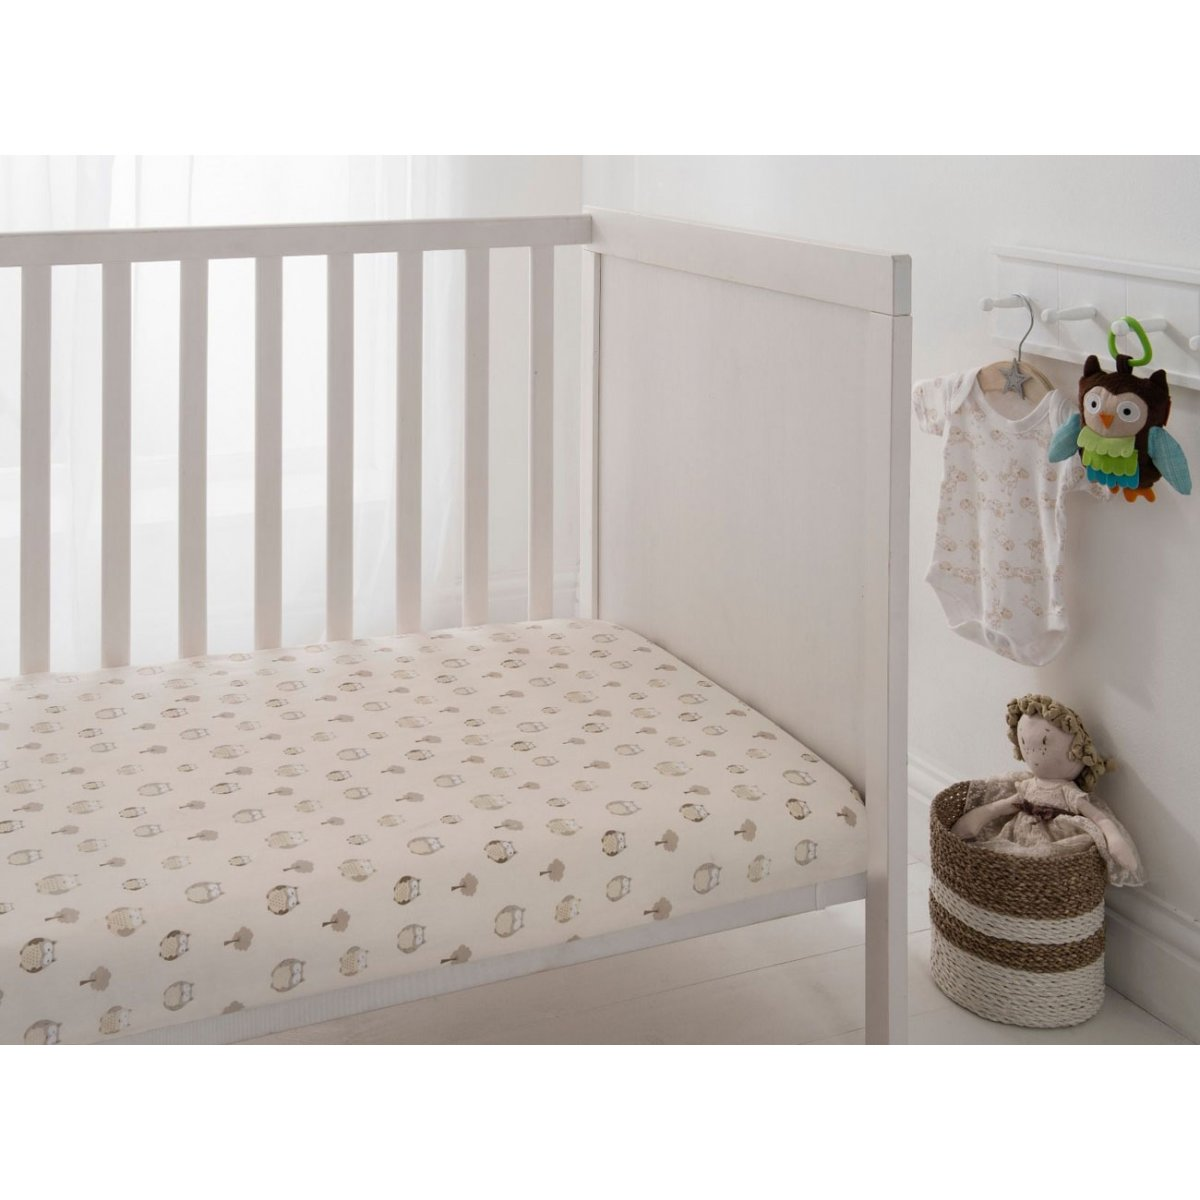 Owl Tan Crib Sheets 2 Pack